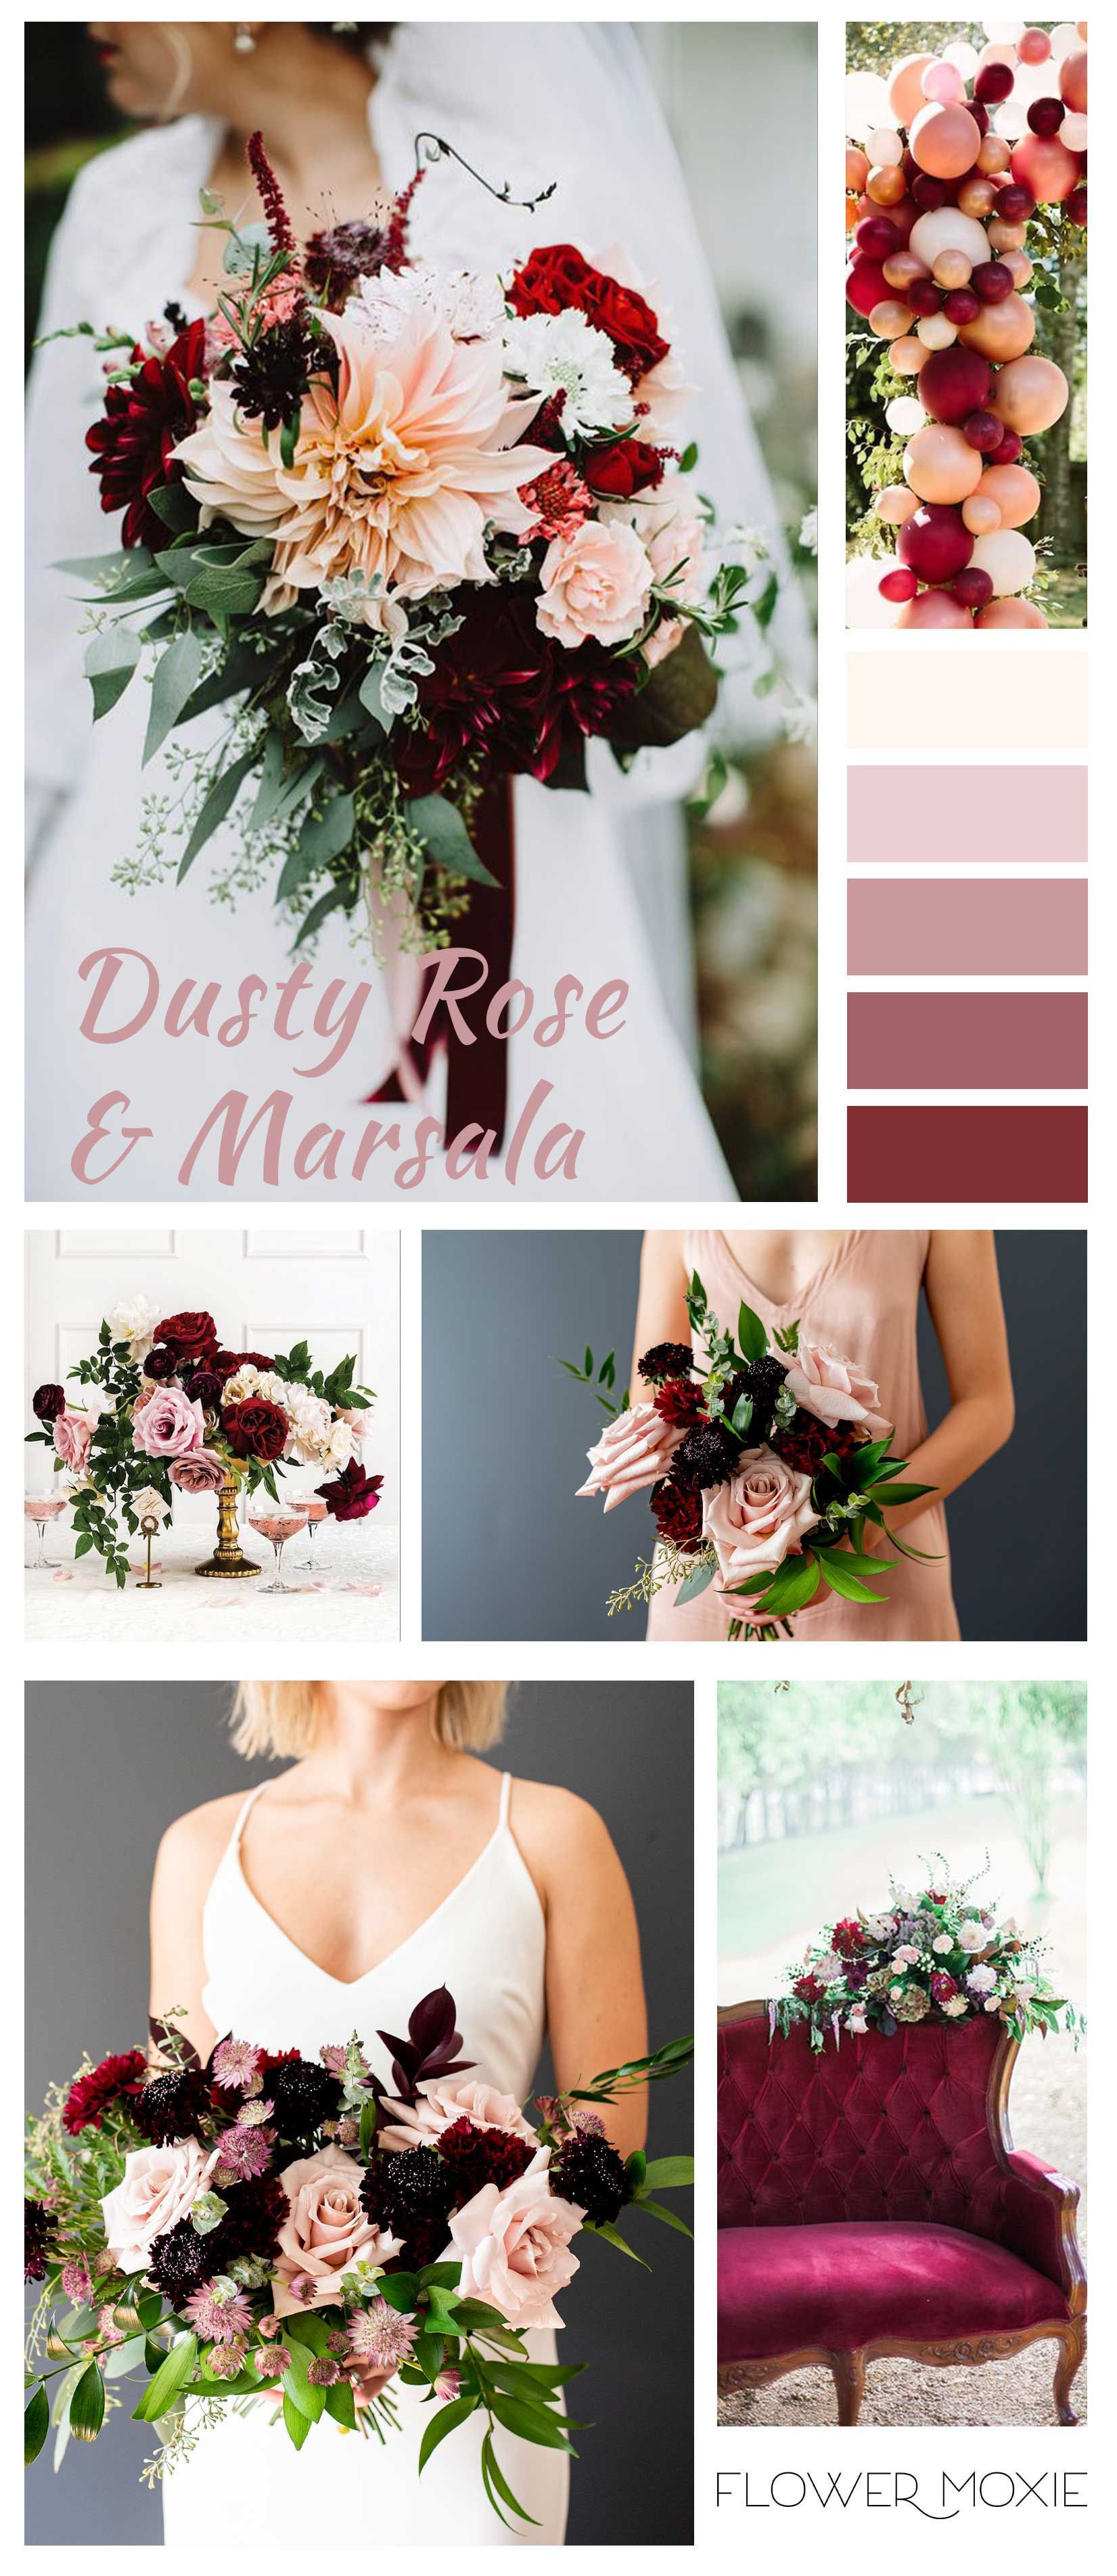 DIY Flower Packages Dusty Rose & Marsala Wedding Flower